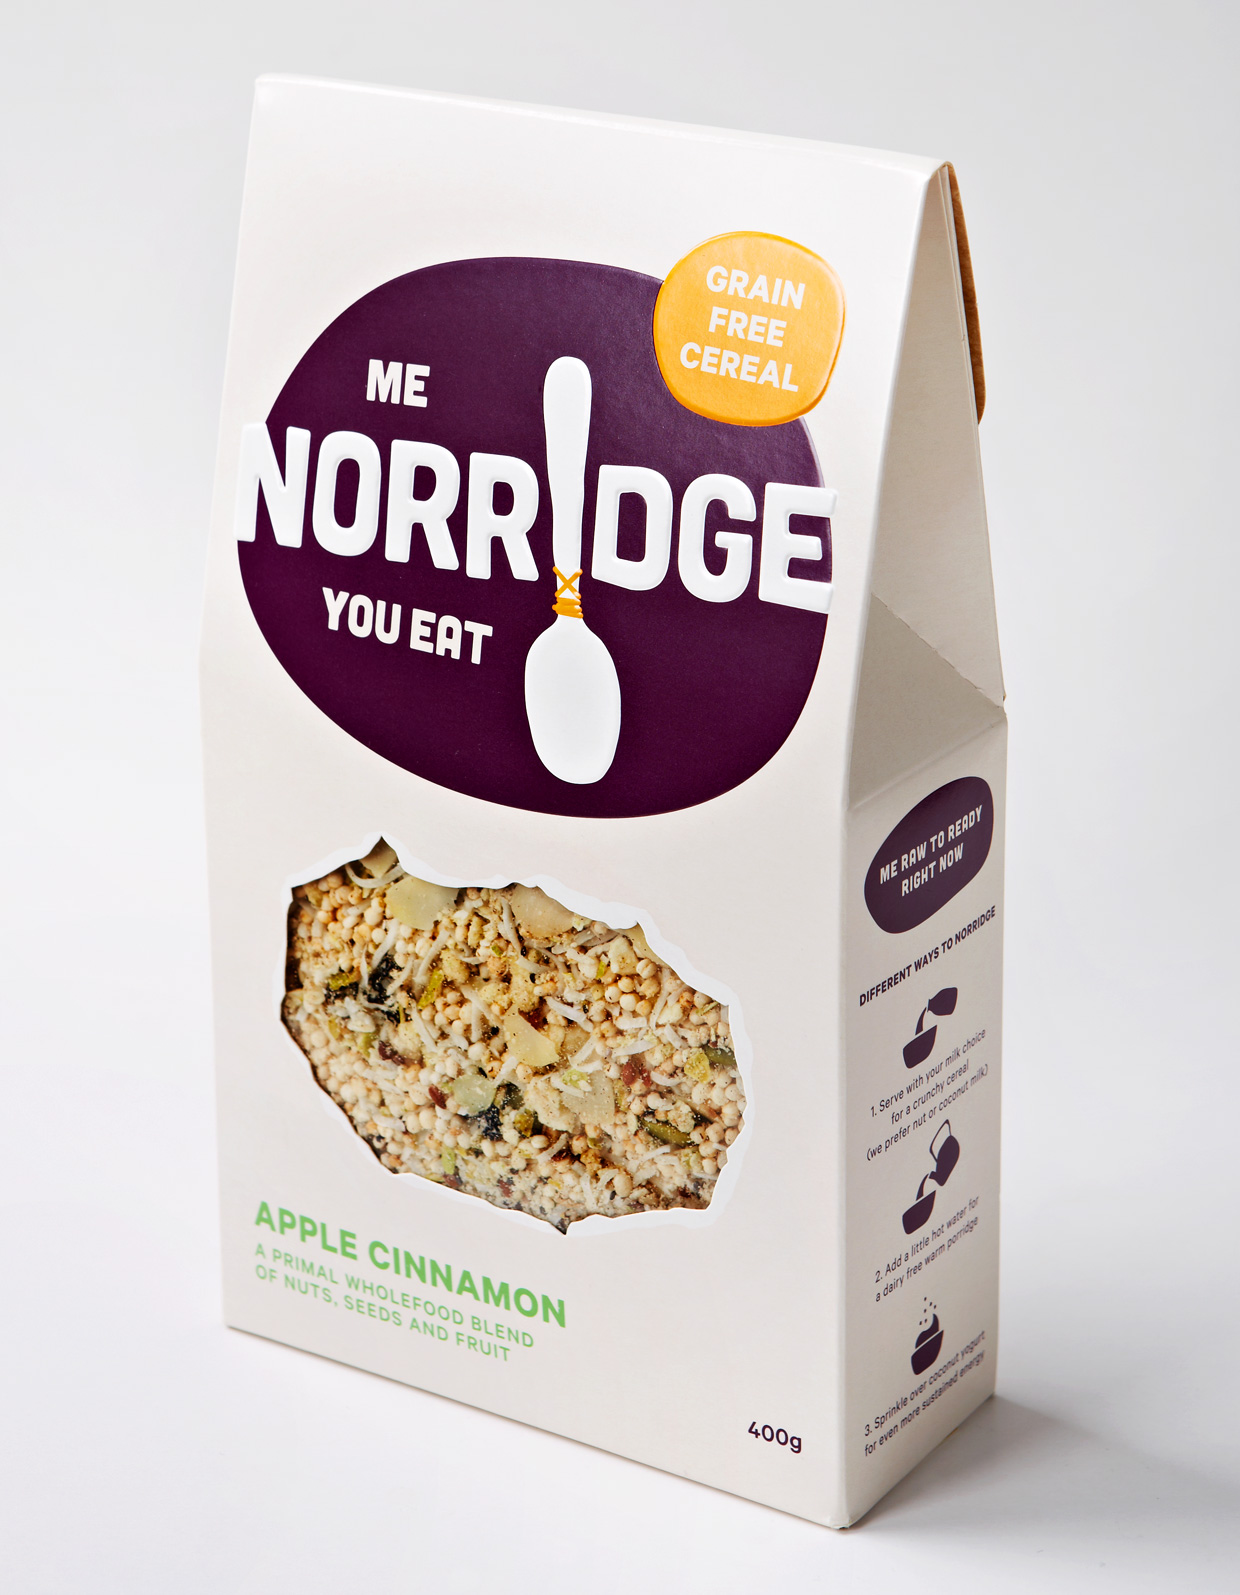 Norridge Paleo Grain Free Cereal ~ www.foodactually.com.au